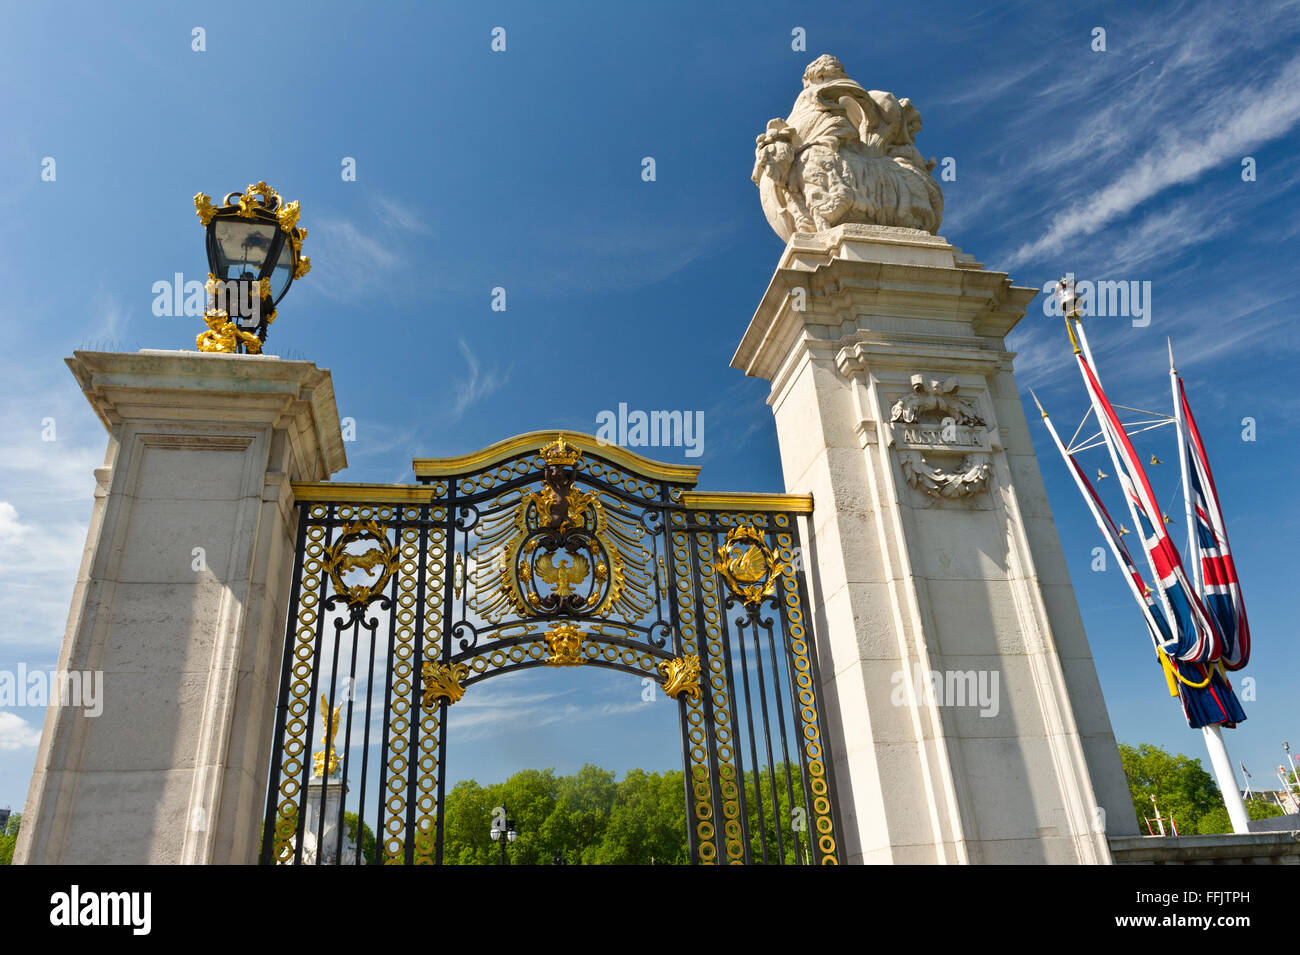 A steel gate ornate with golden decorations near Buckingham Palace, London, United Kingdom. - Stock Image